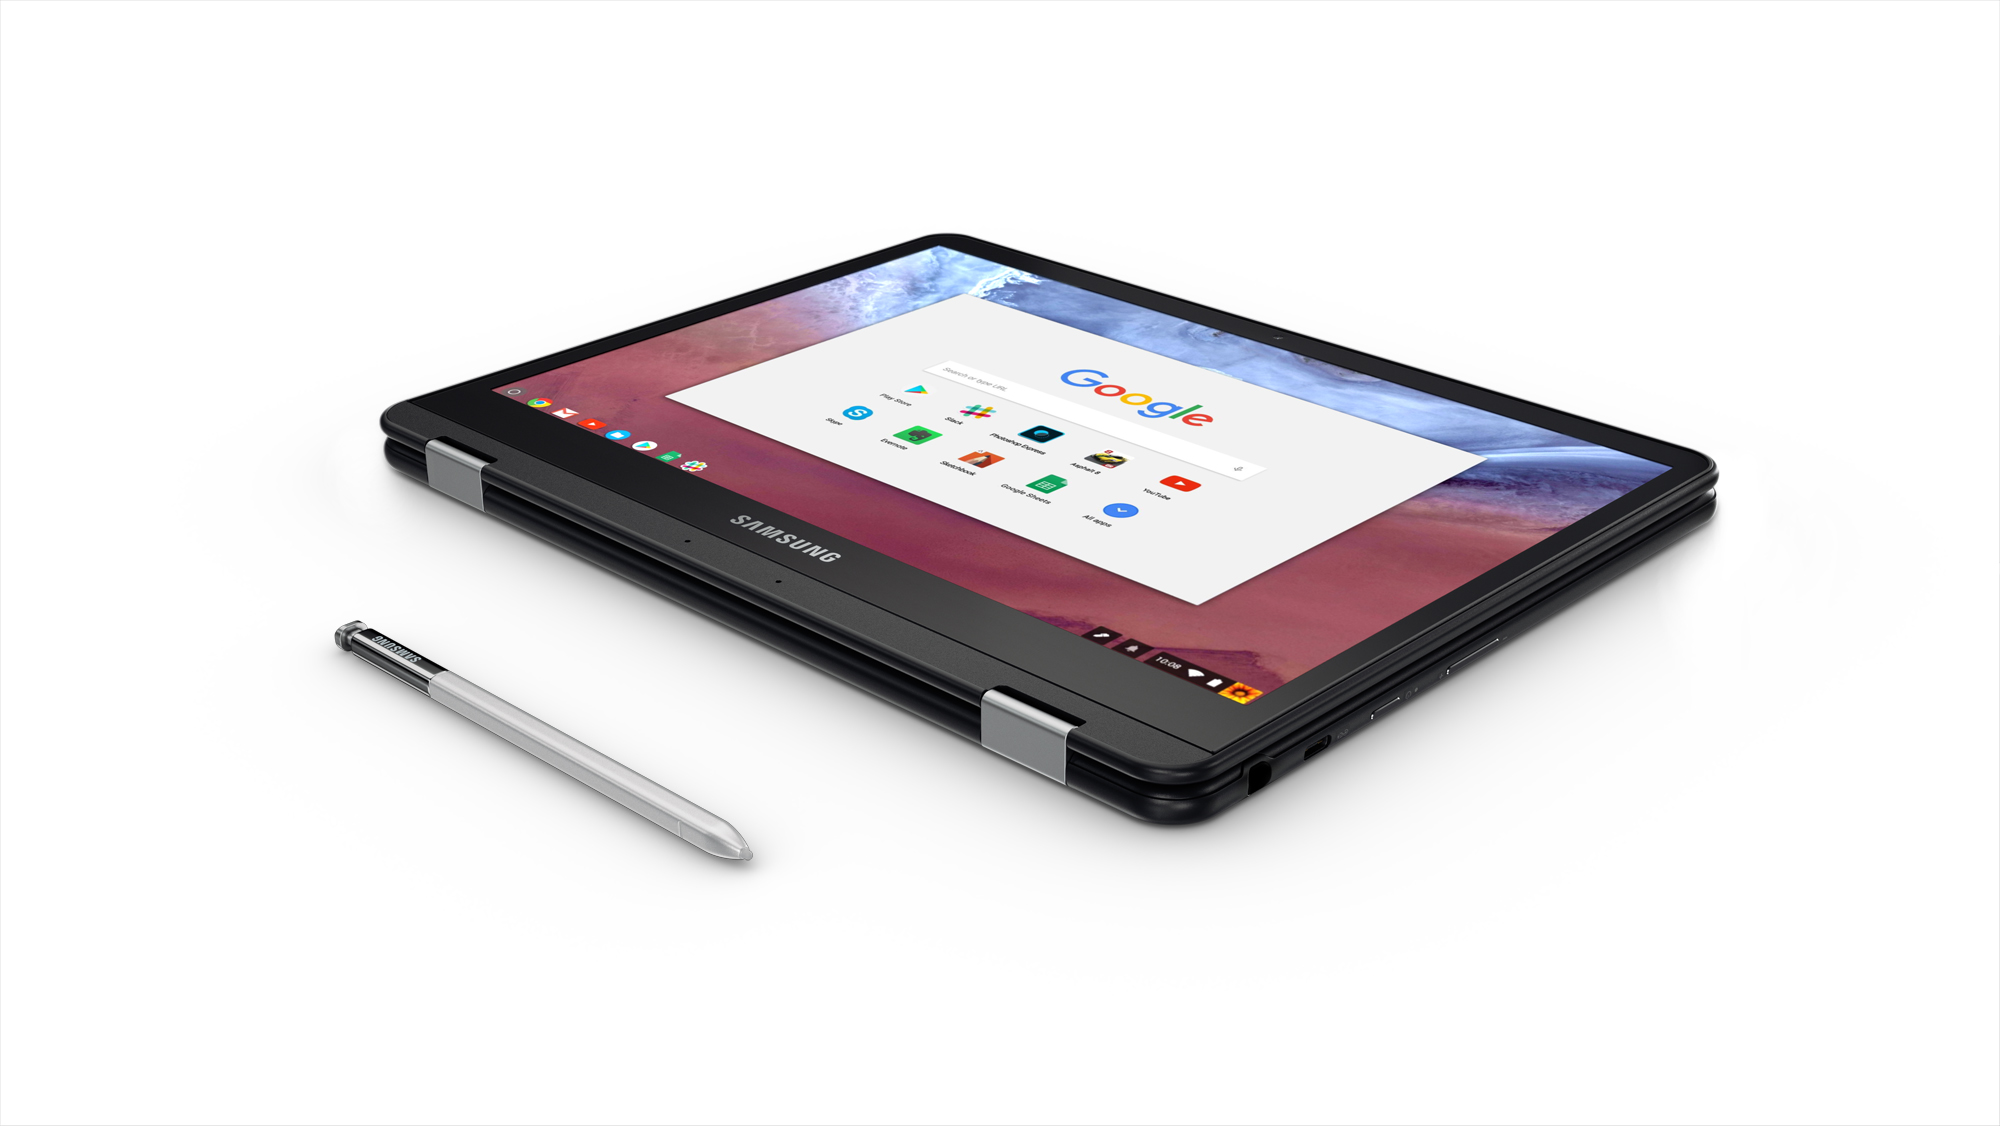 05_chromebook_hero_shot_tablet_mode_front_facing_top_screen_a